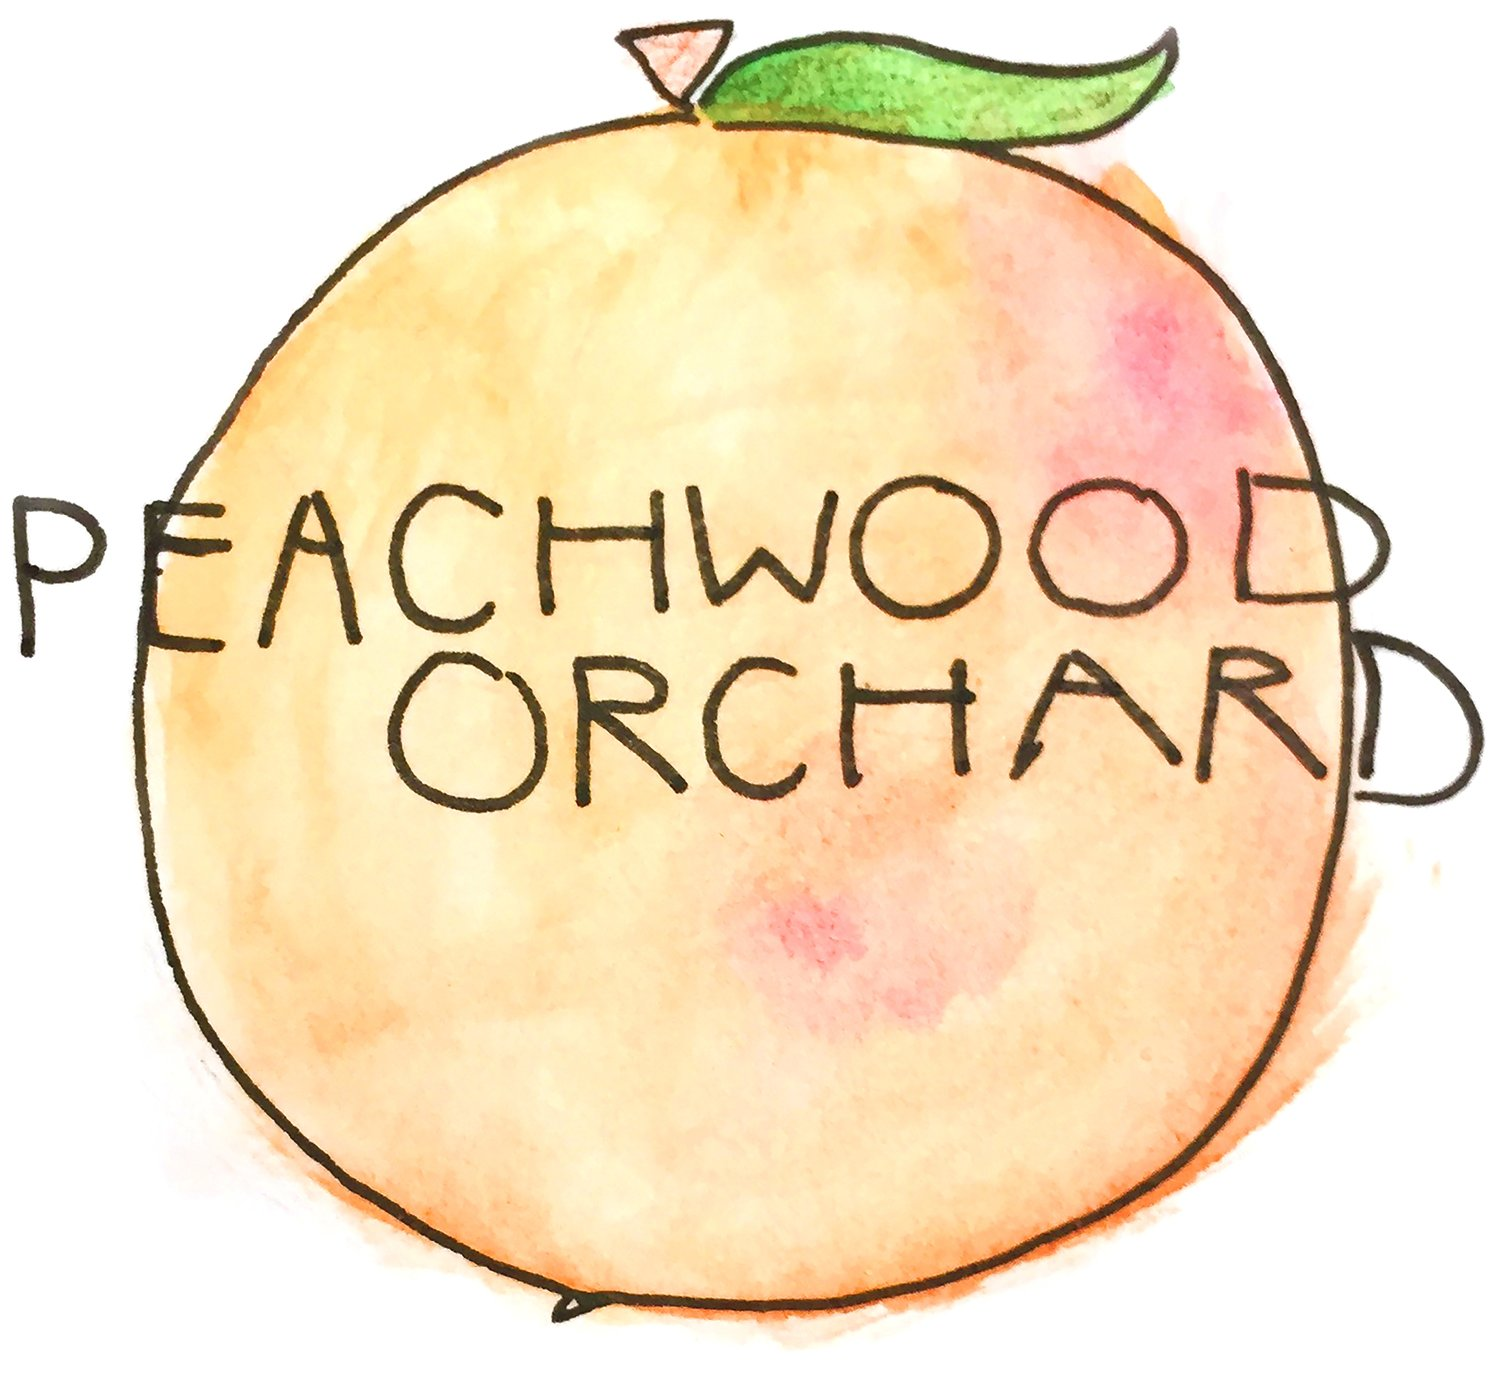 Peachwood Orchard